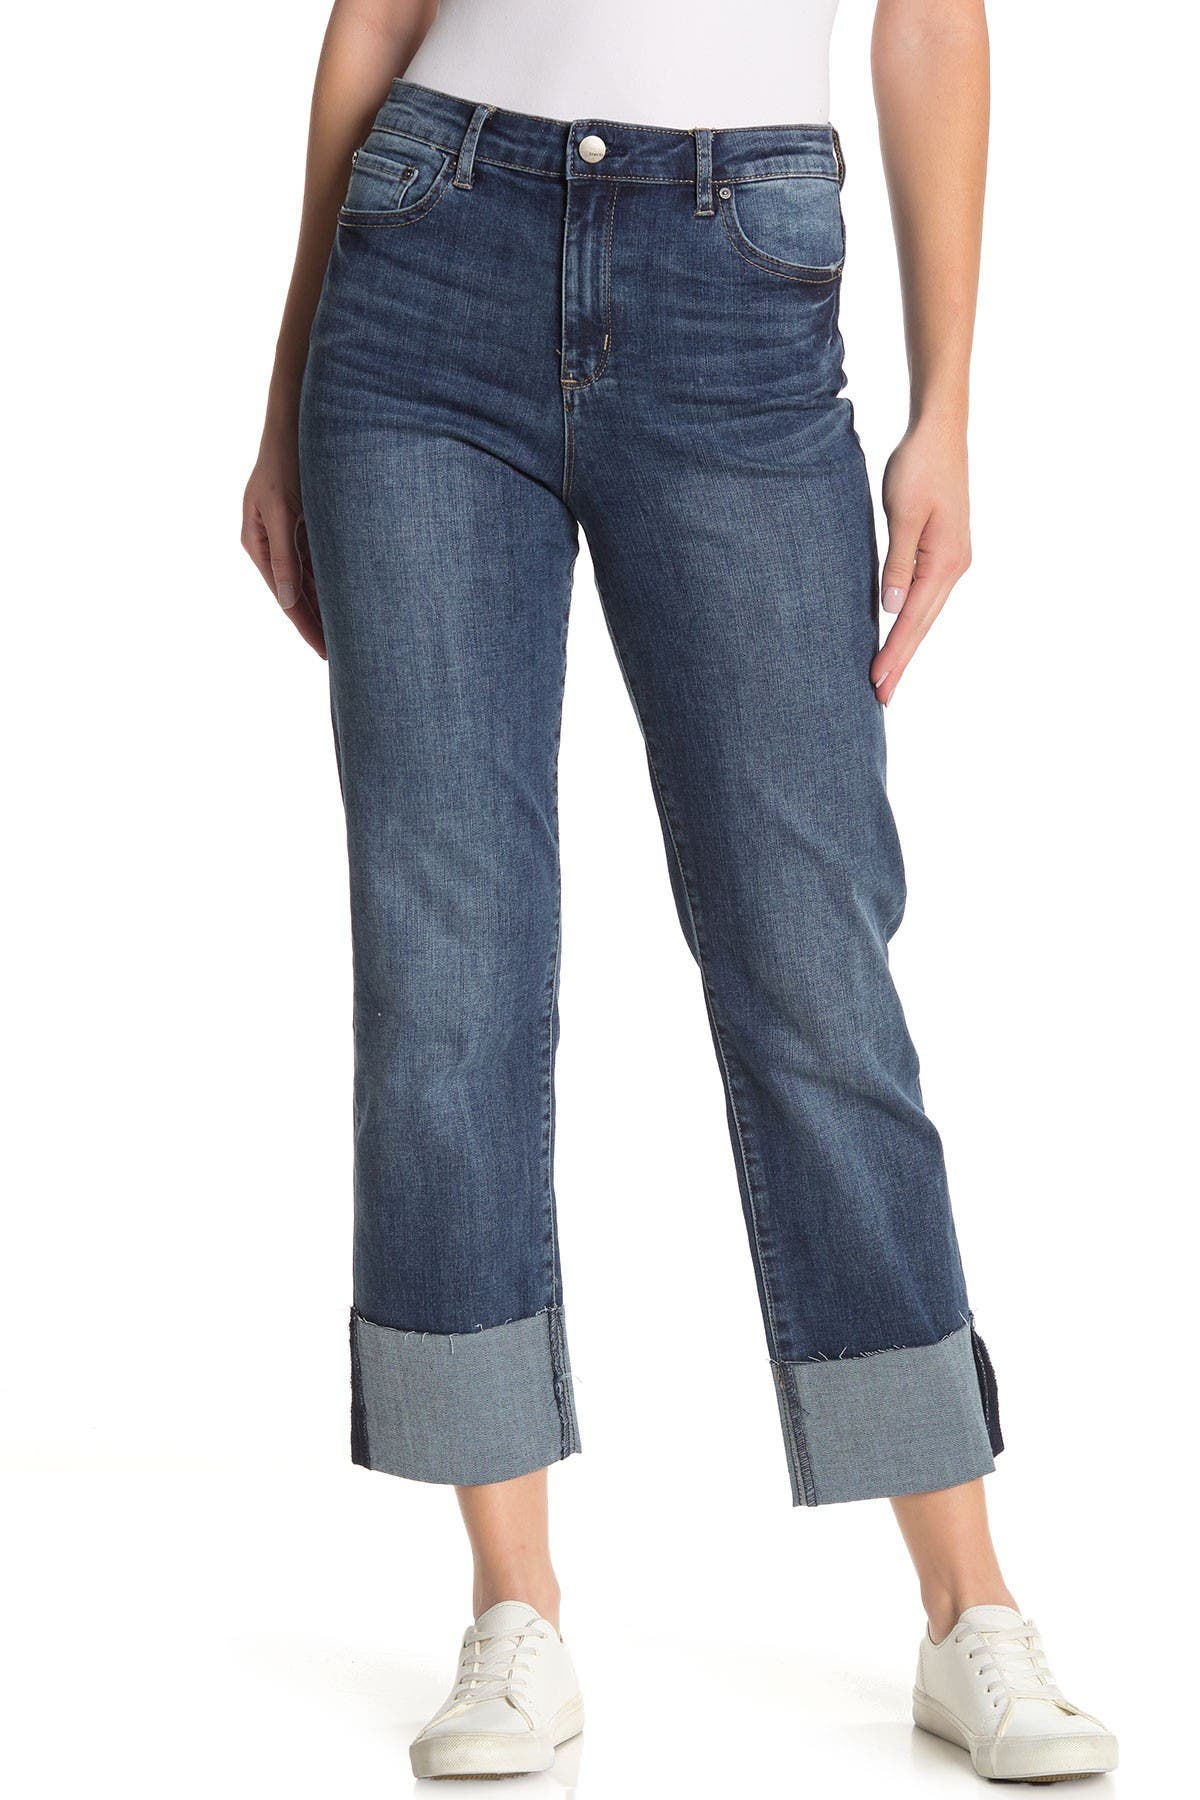 Image of Tractr High Rise Cuffed Crop Jeans